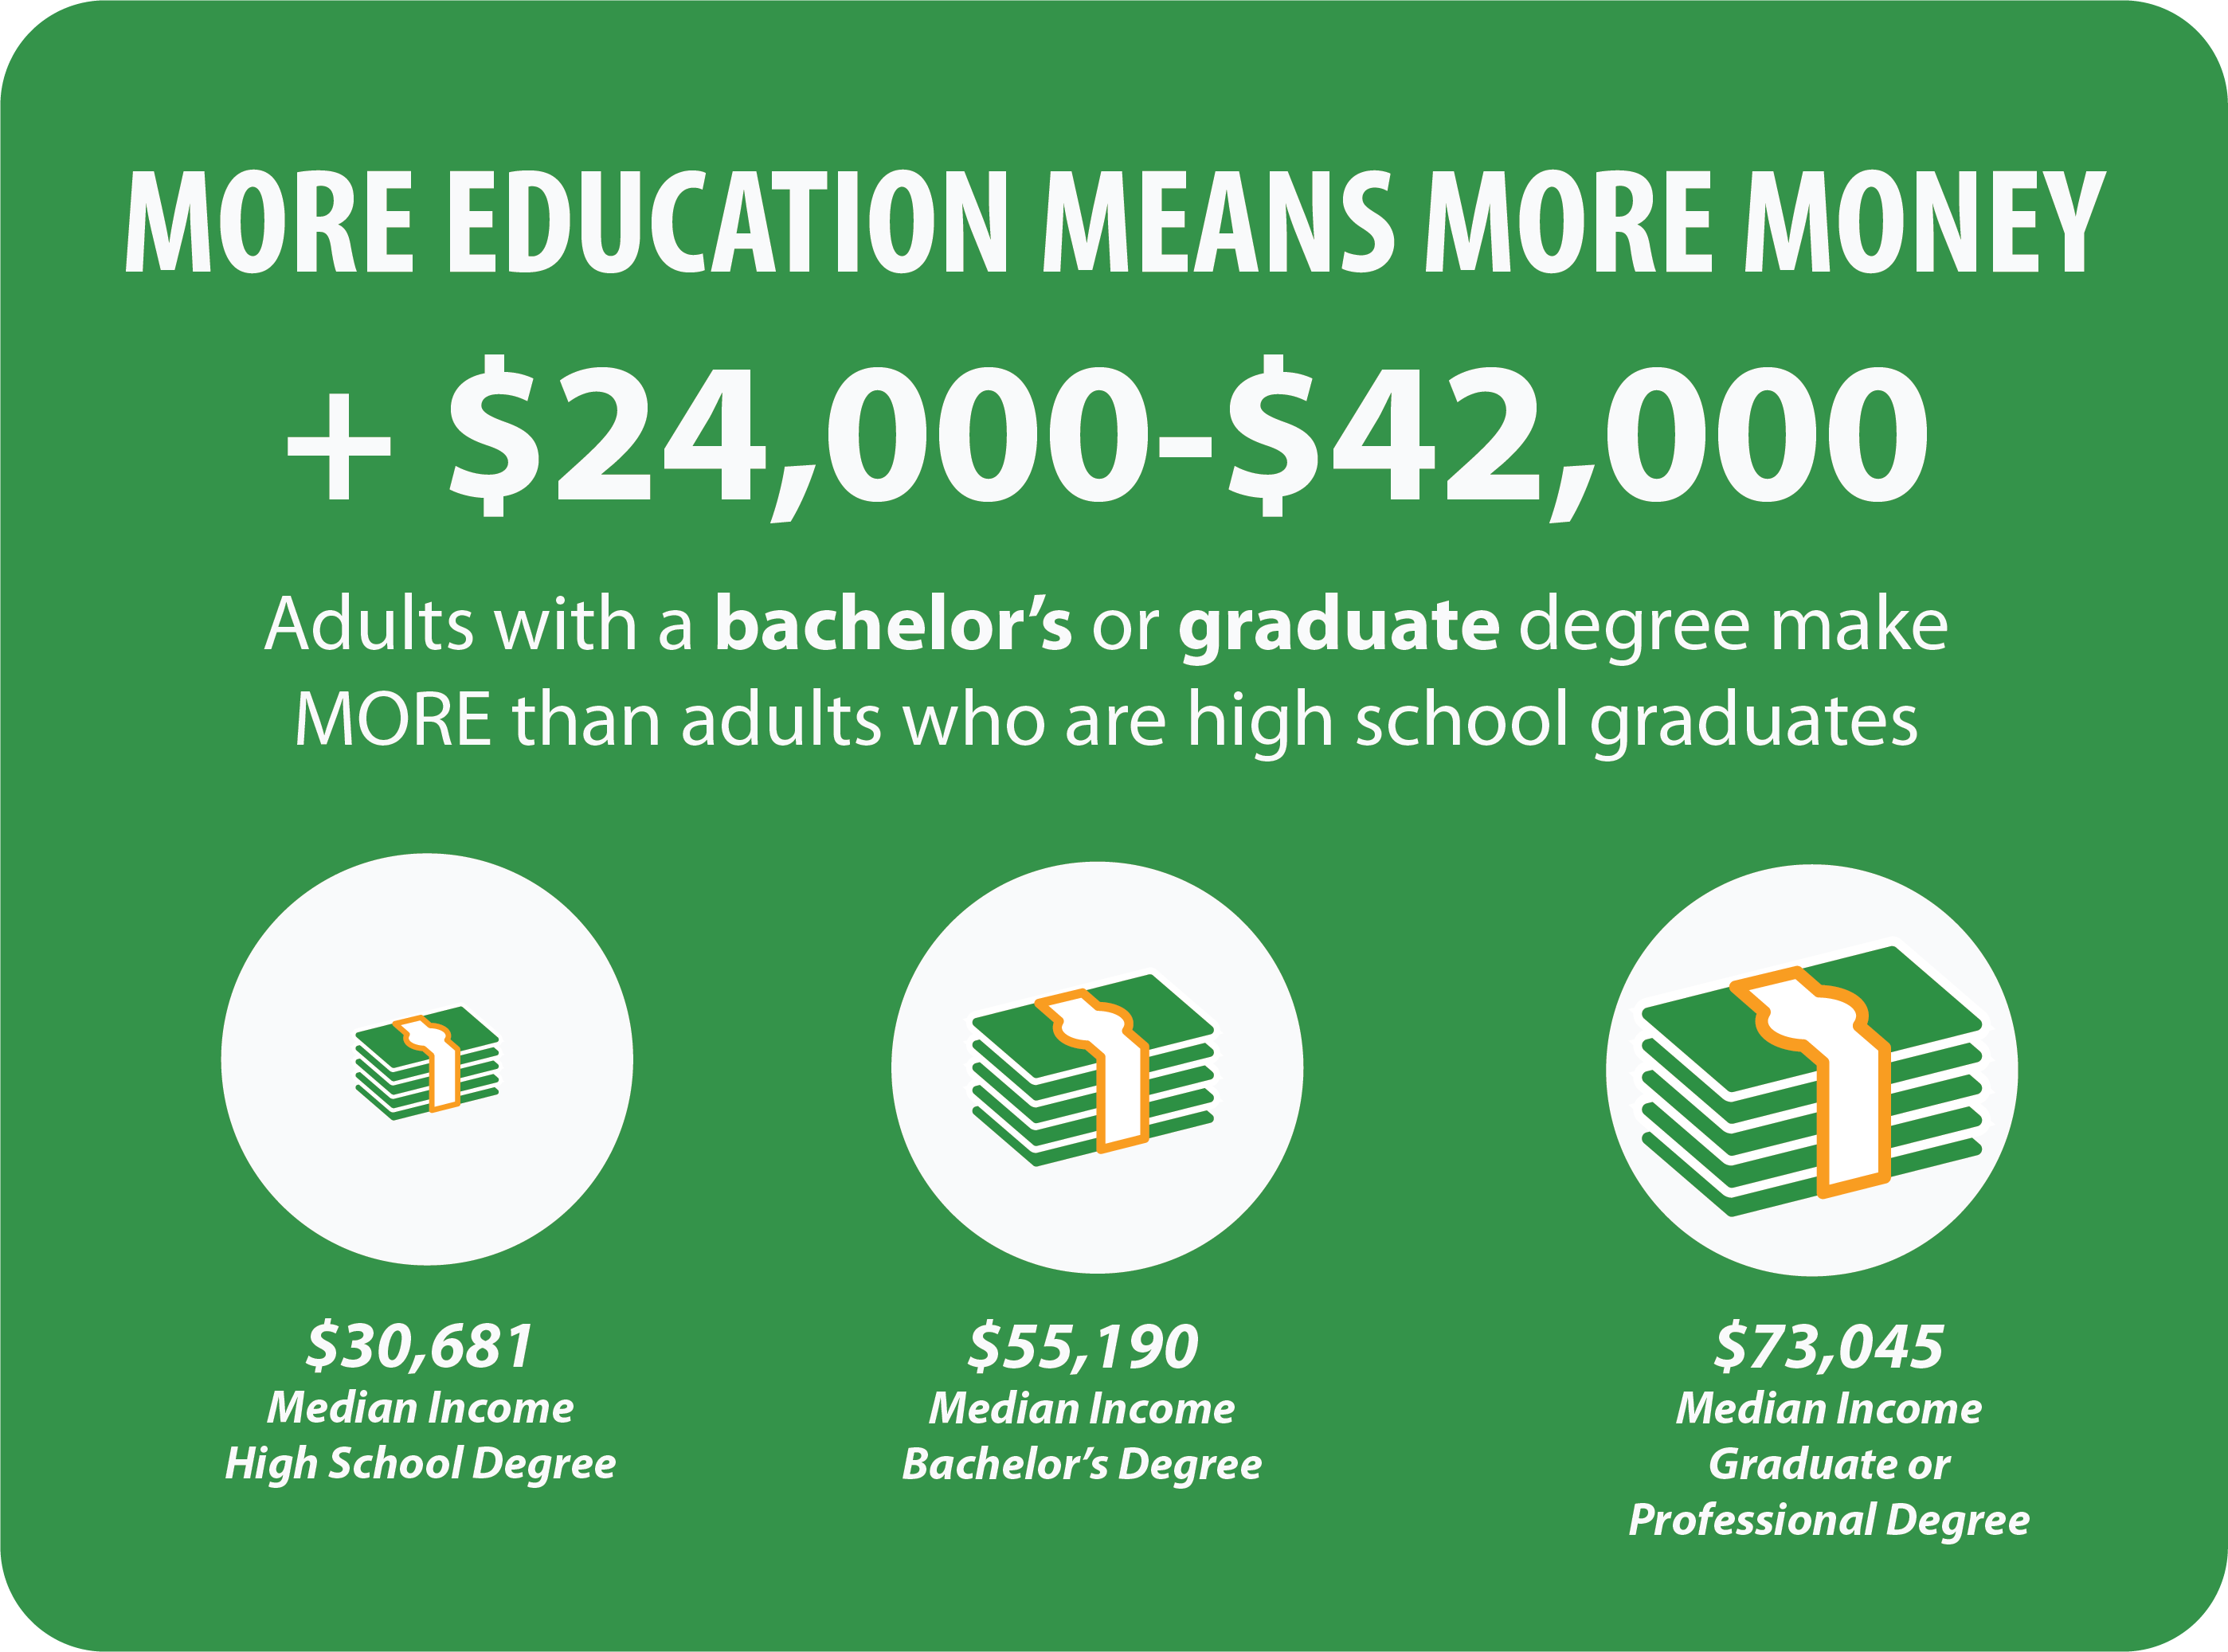 More education means more money. +24,000 to 42000. Adults with a bachelor's or graduate degree make MORE than adults who are high school graduates